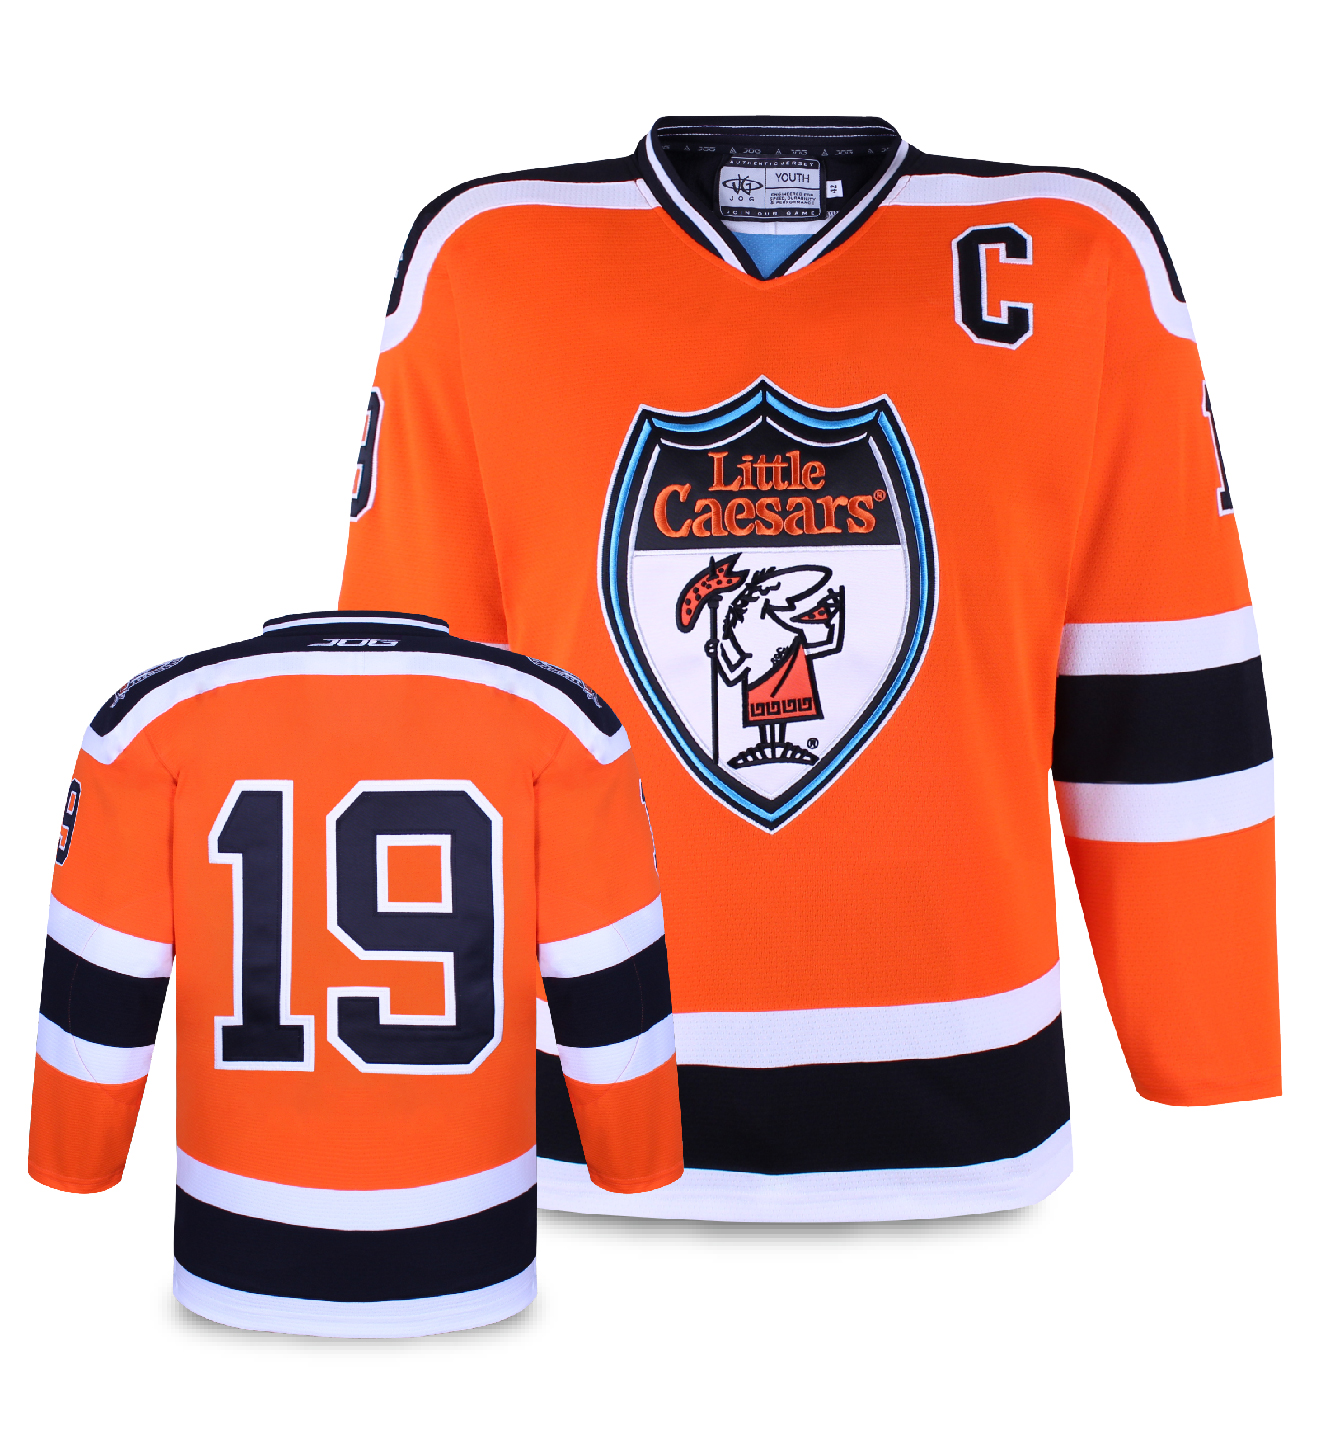 Little Caesars custom hockey jersey for the men's ice hockey team. NHL jersey quality ice hockey jersey in the CCHL2.